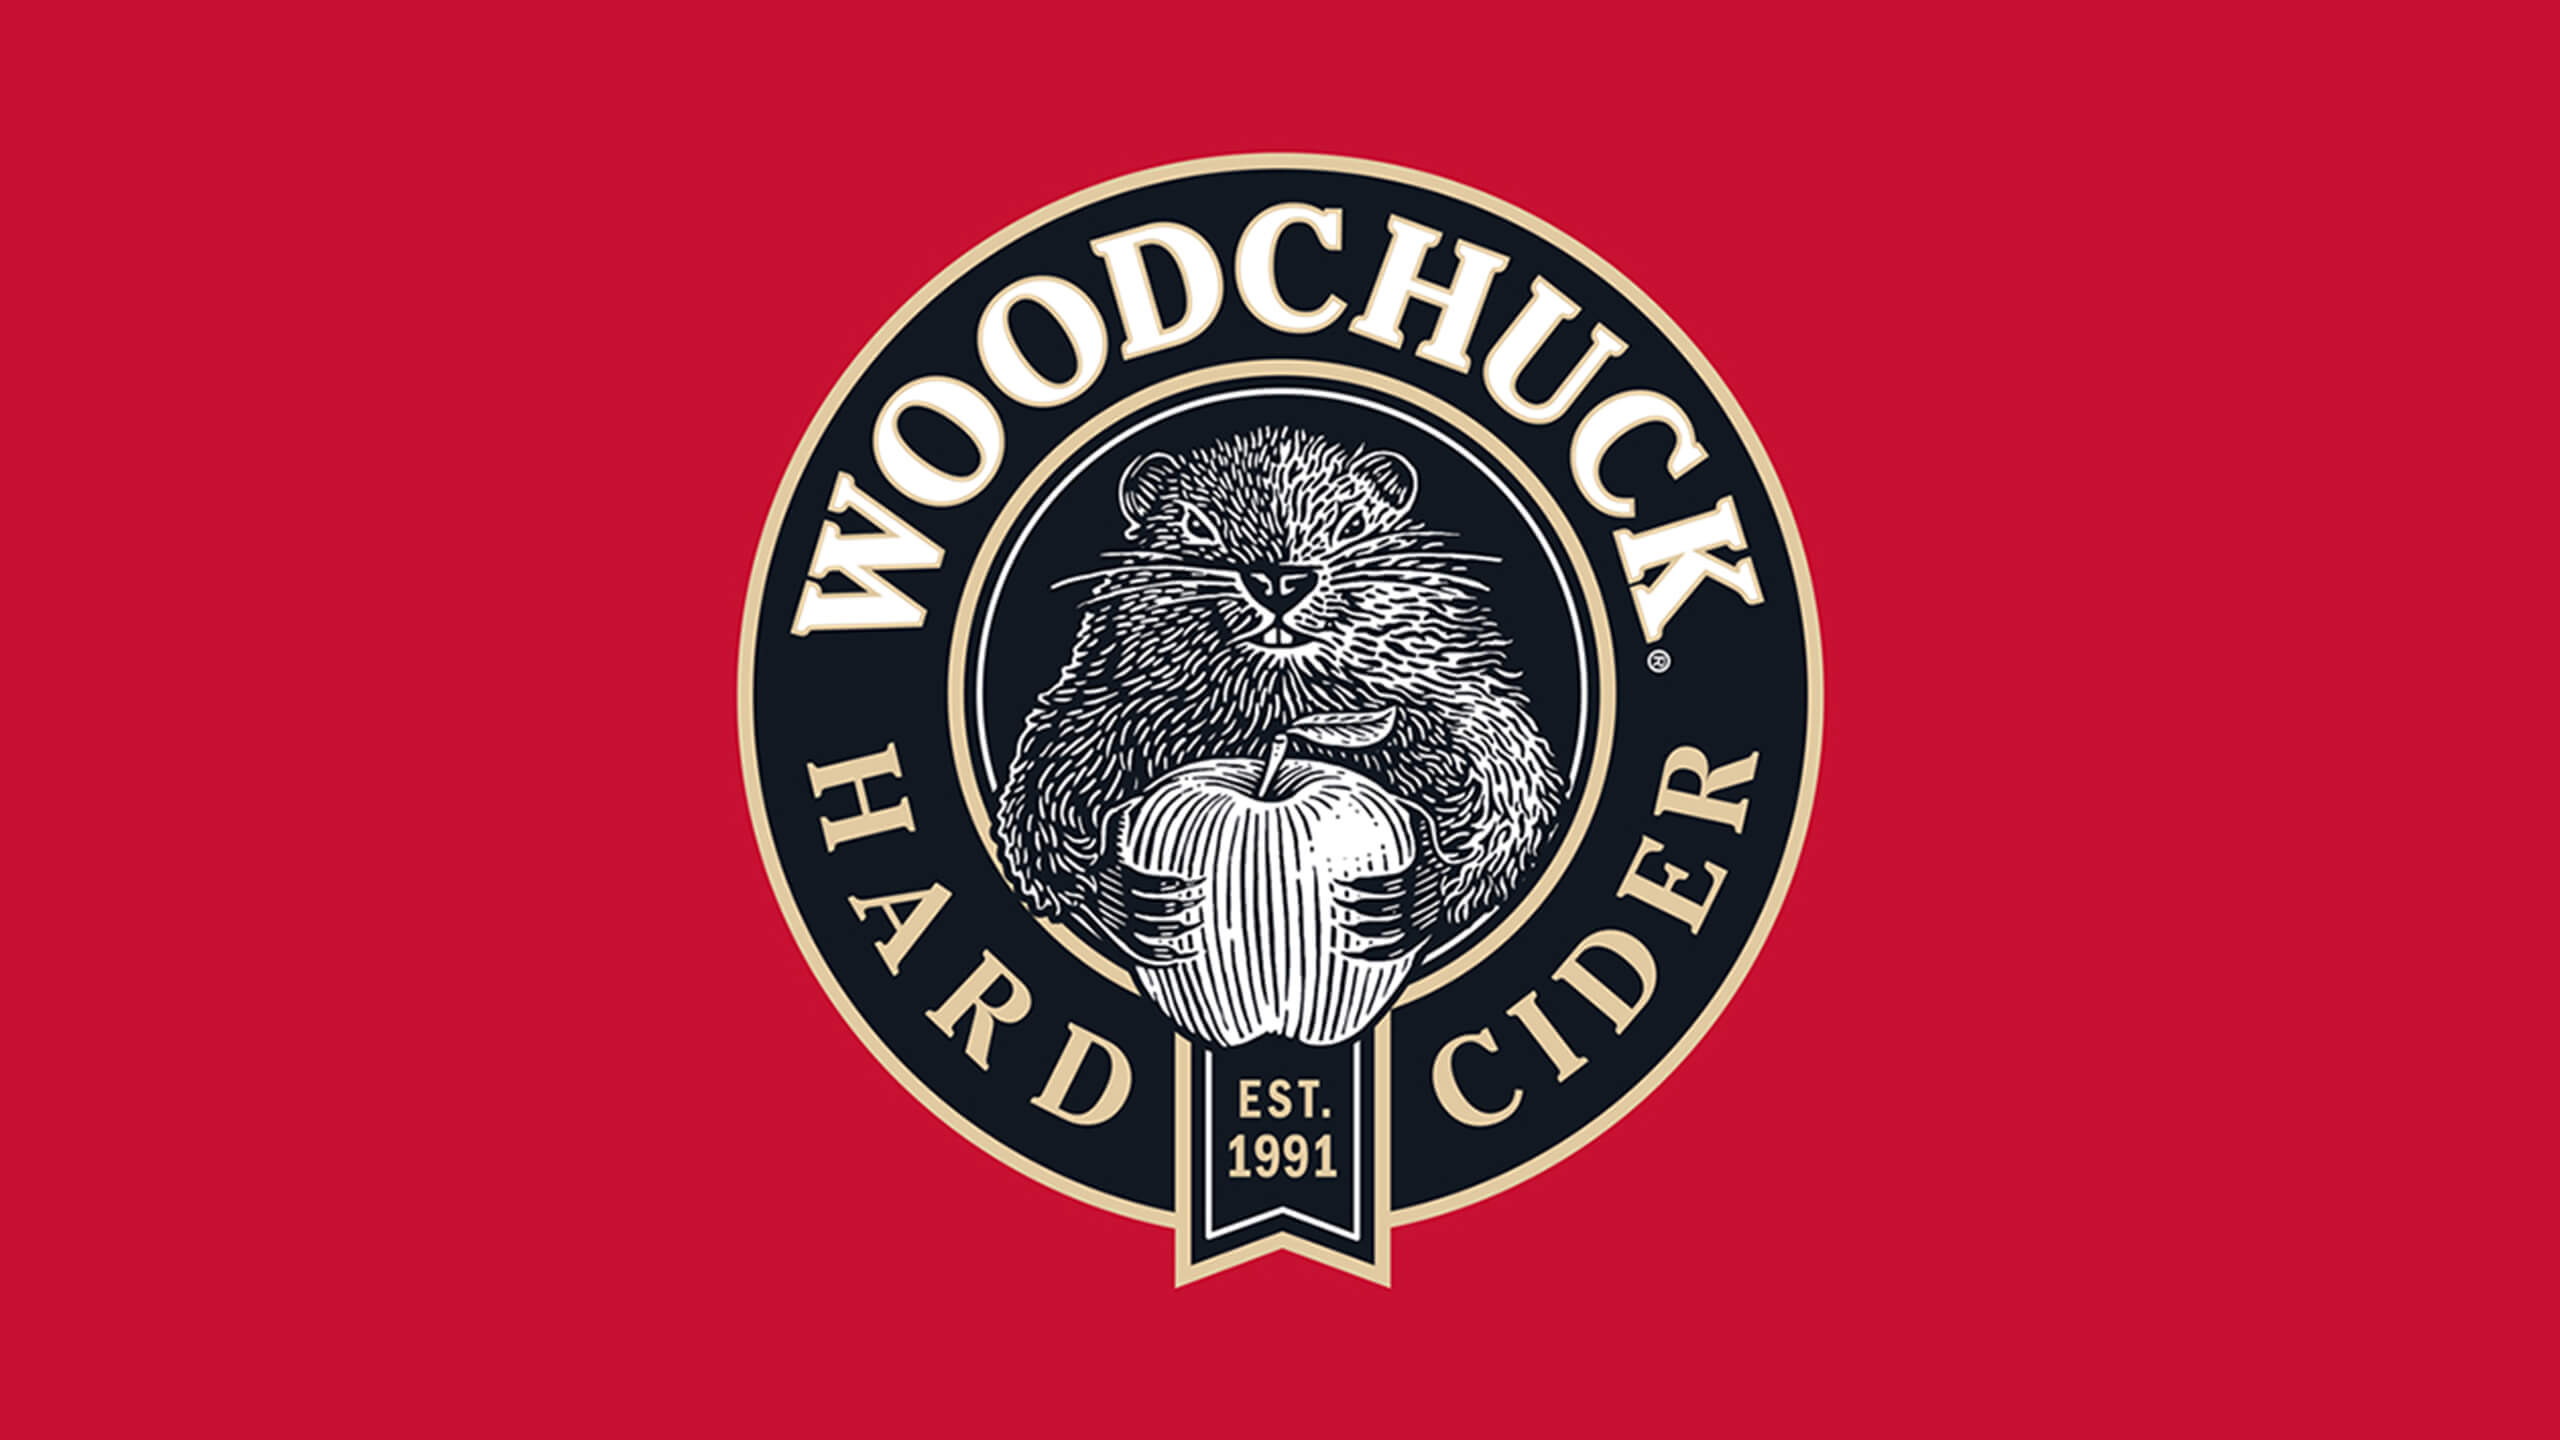 Sprout studios, Boston, industrial design, product design, rendering, Woodchuck, LOGO,, branding, Package design, packaging, Cider